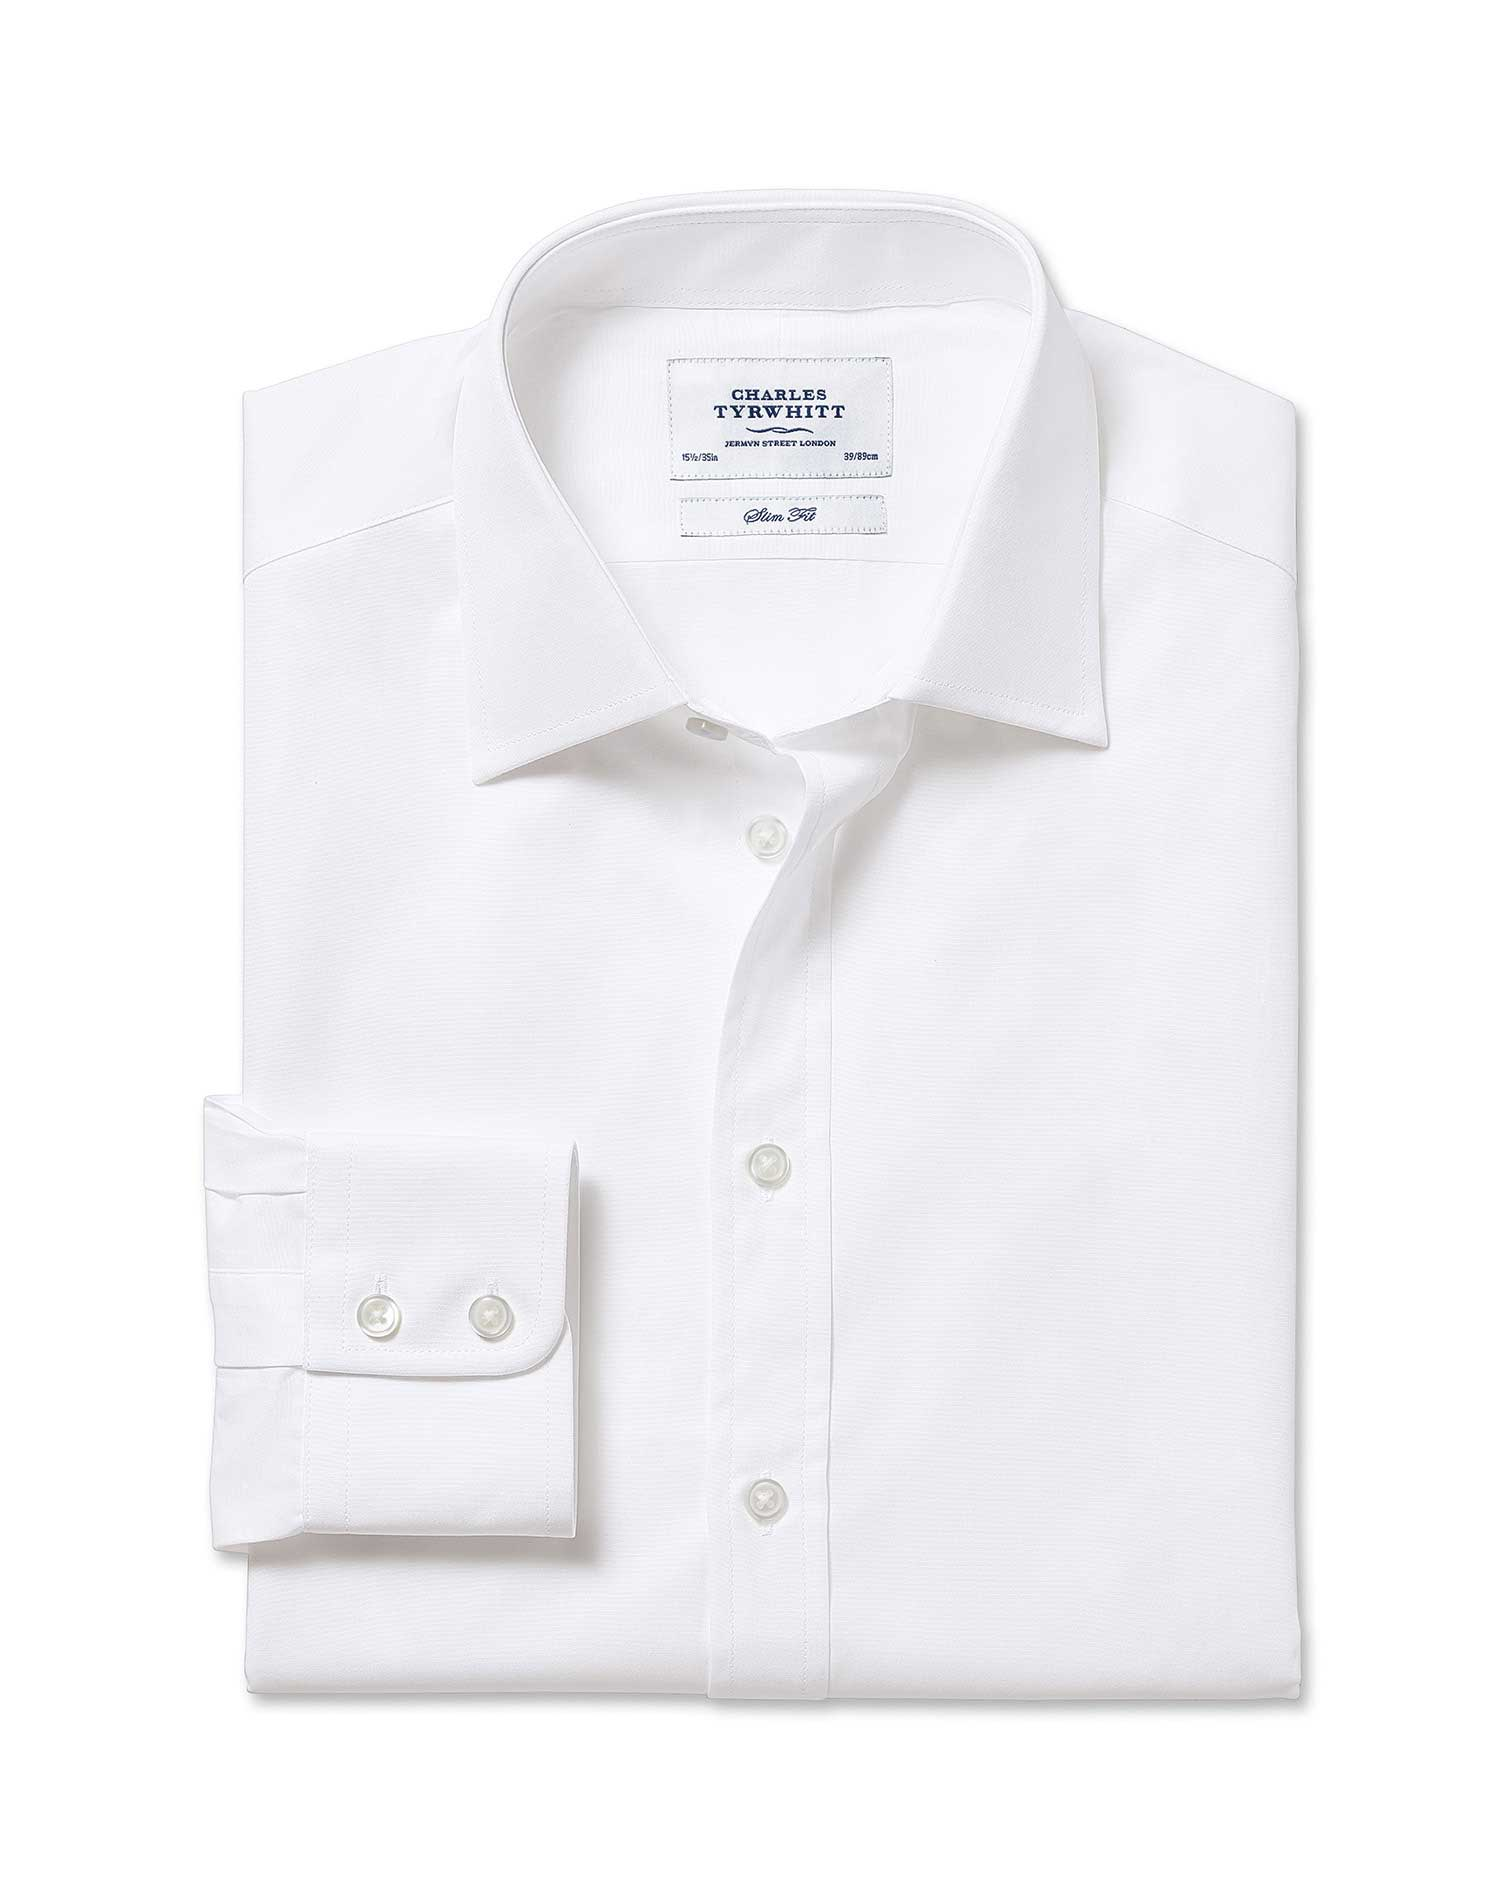 Extra Slim Fit Egyptian Cotton Poplin White Formal Shirt Single Cuff Size 15.5/34 by Charles Tyrwhit